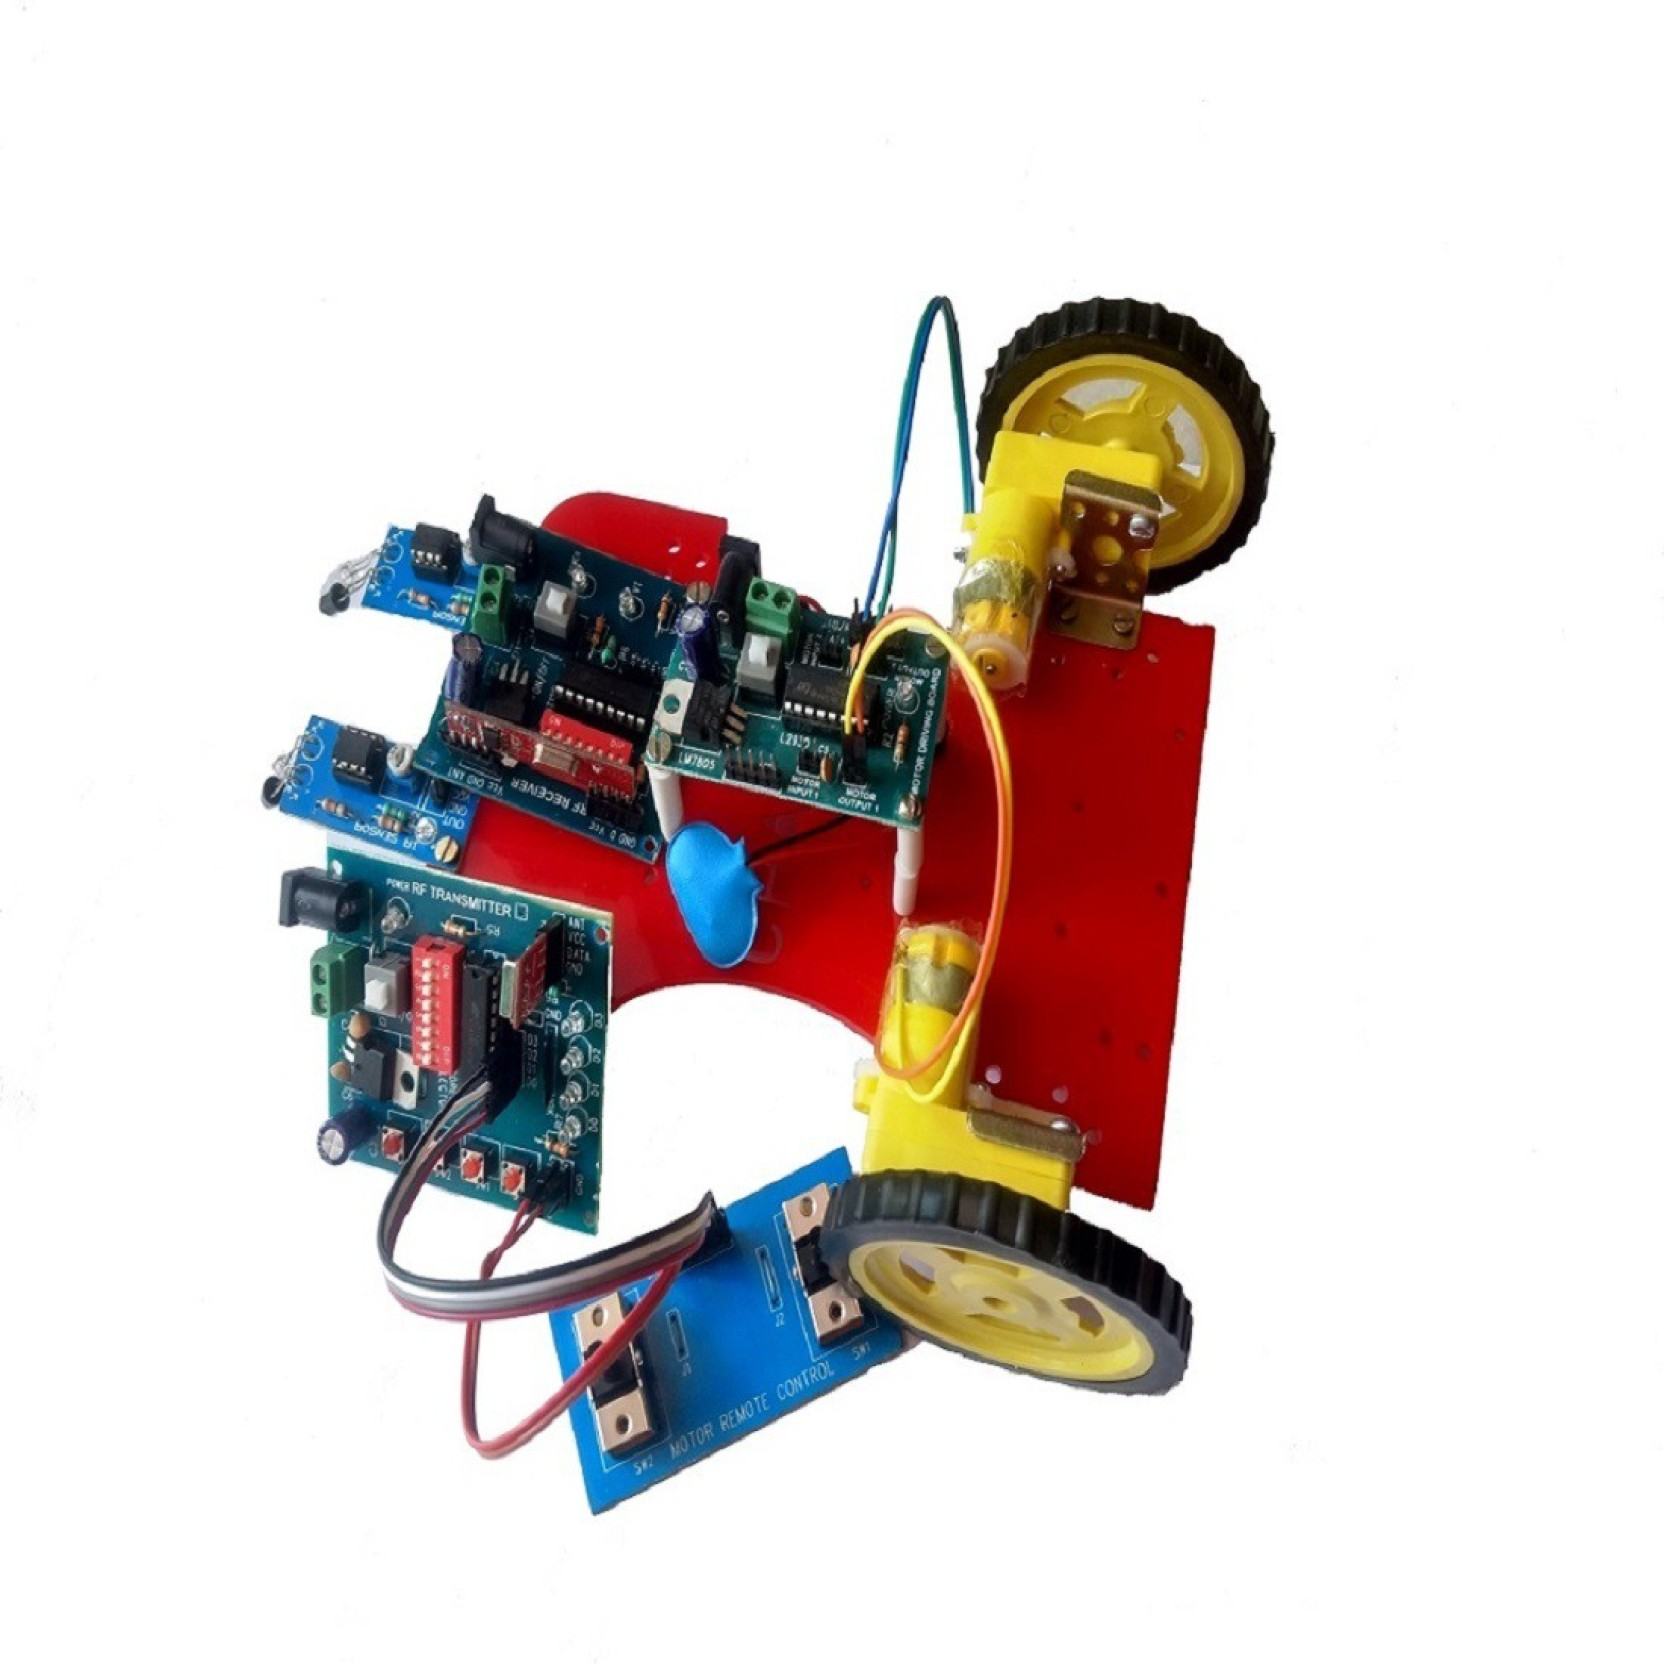 Embeddedelectronics Line Follower Robot Without Microcontroller